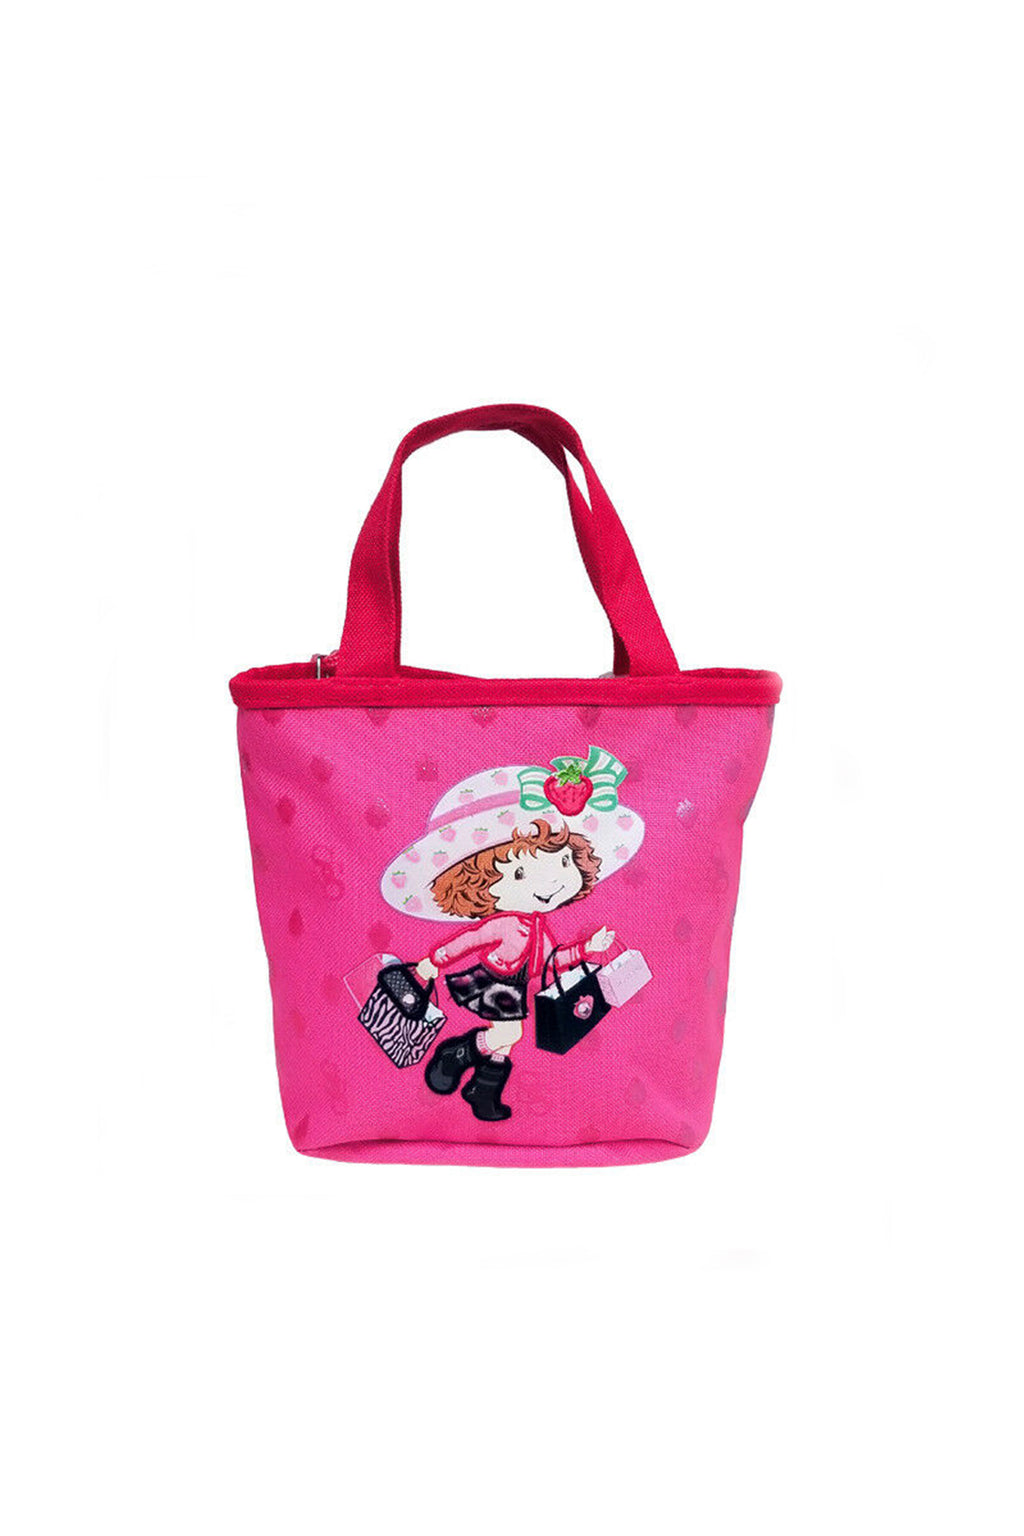 Strawberry Shortcake Tote Bag